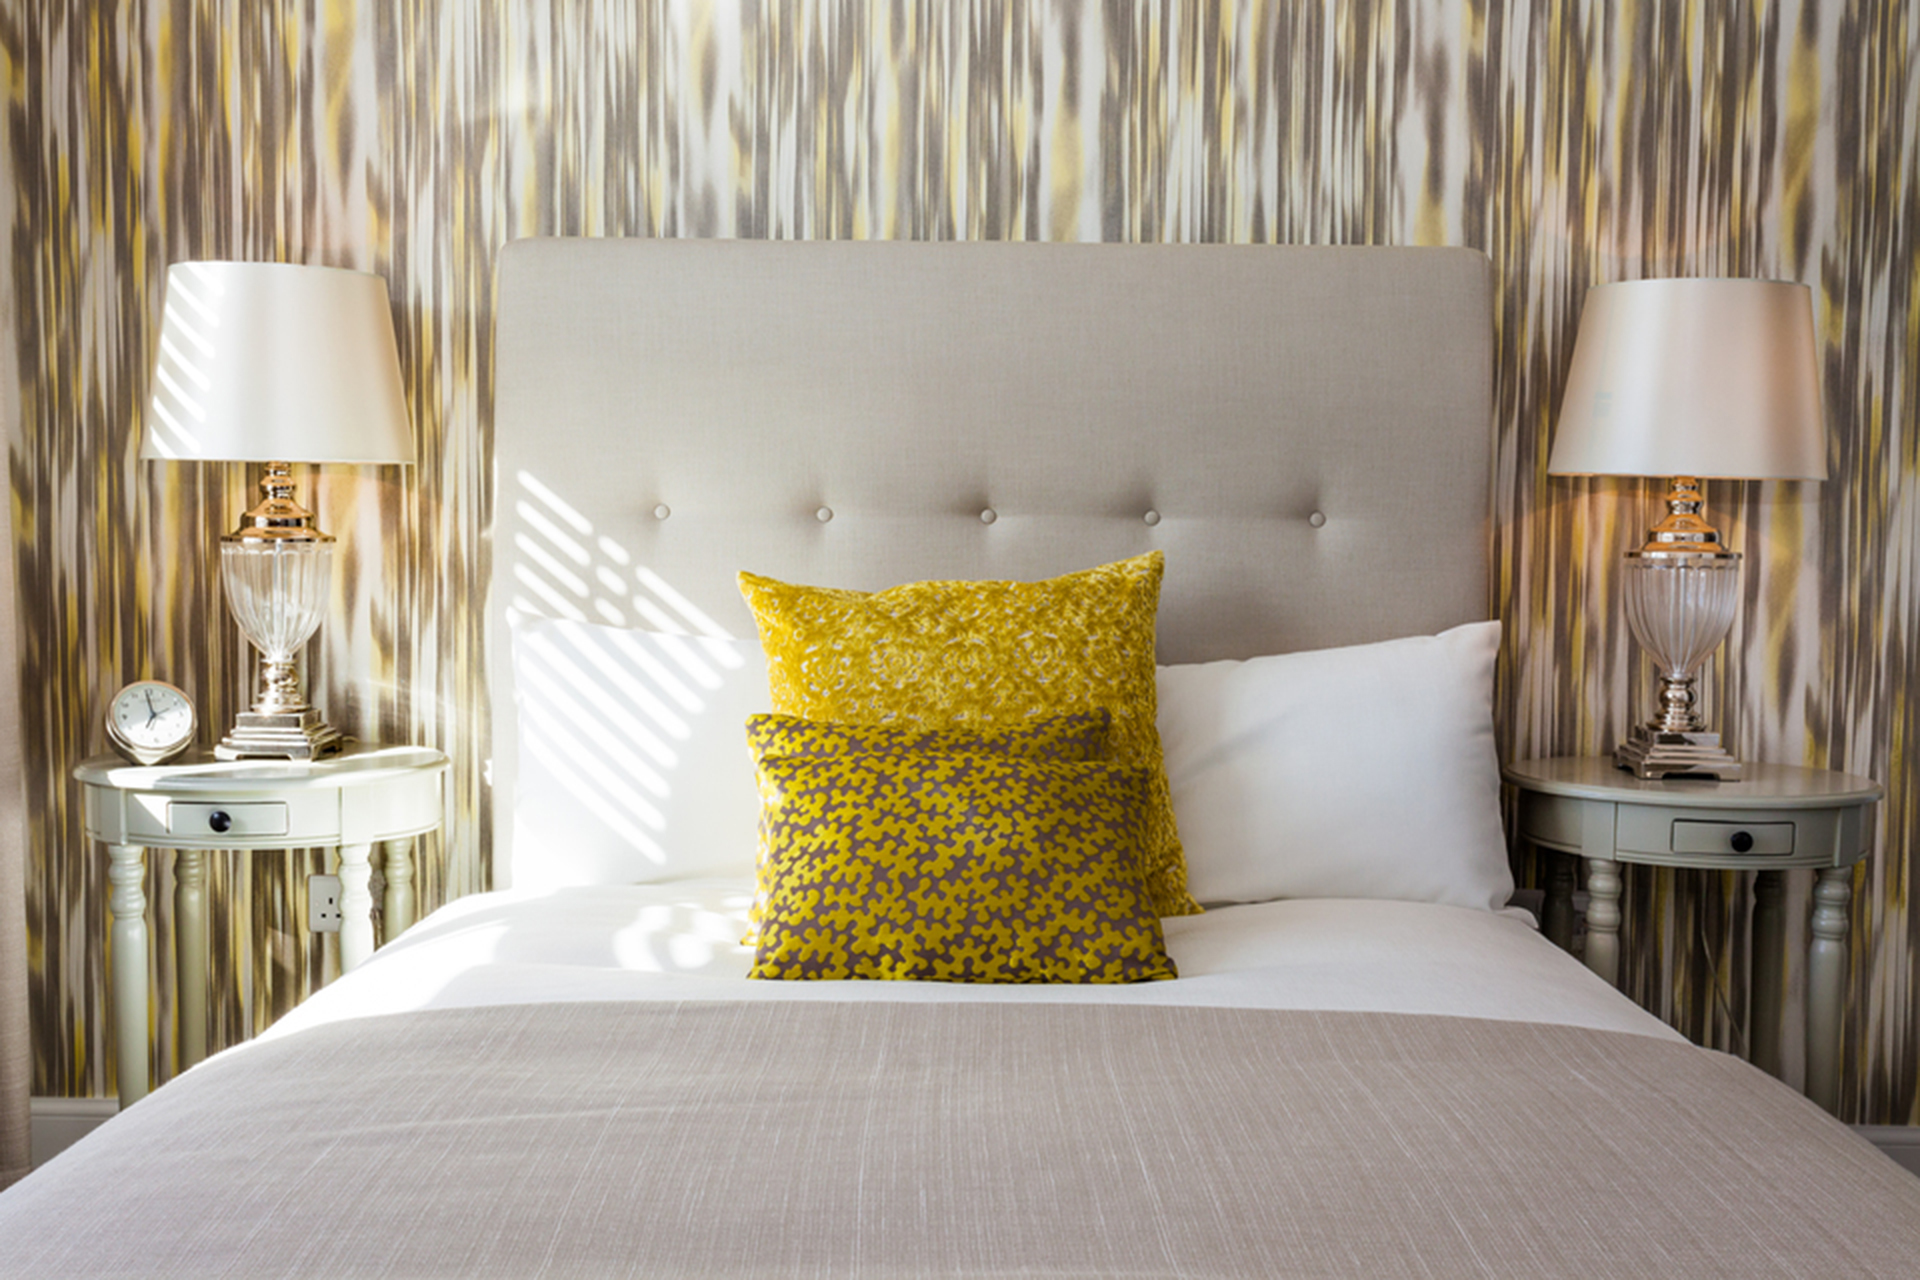 Bed decorated with yellow cushions